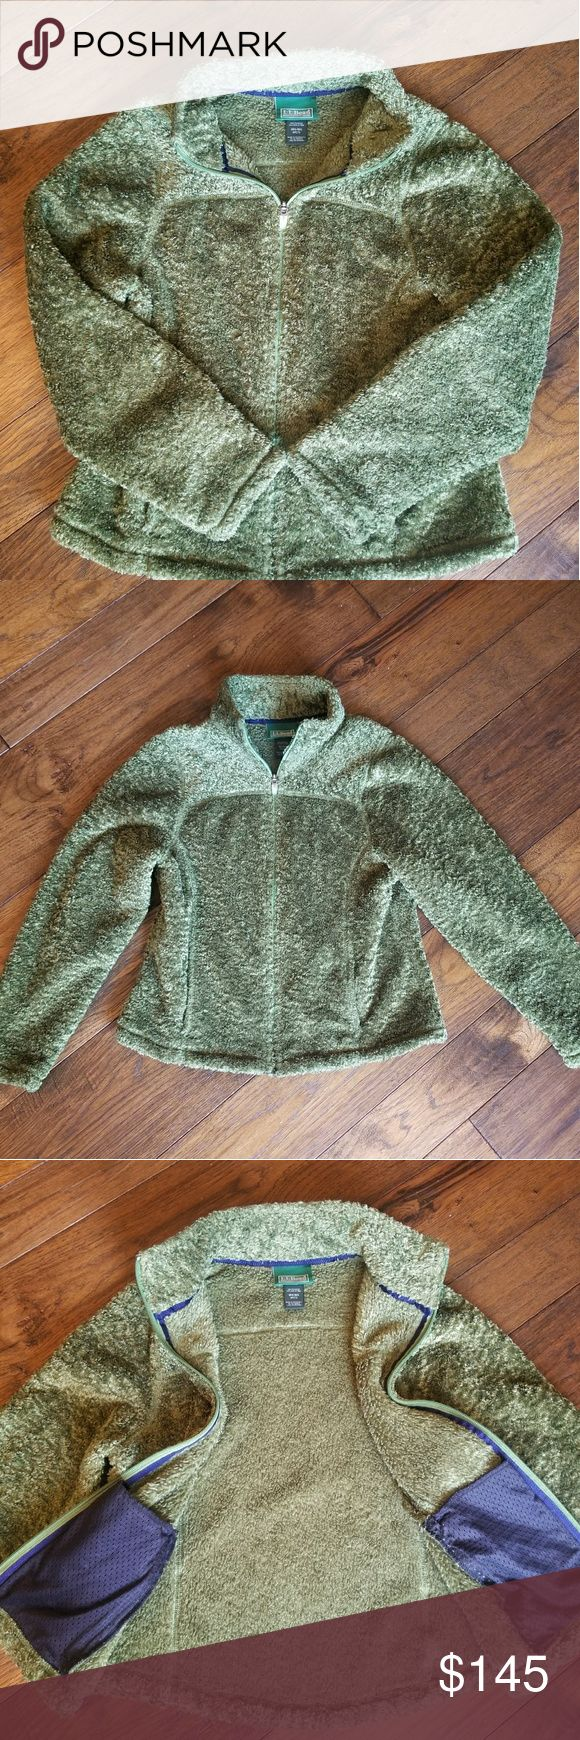 L.L. Bean green plush zip up jacket with pockets L.L. Bean green plush zip up jacket with pockets. Size Misses Regular. Equivalent tina women's Medium. Pristine condition. Like BRAND NEW WITHOUT TAGS. Super soft,  plush and cushy. Has navy accent inside pockets. L.L. Bean Jackets & Coats